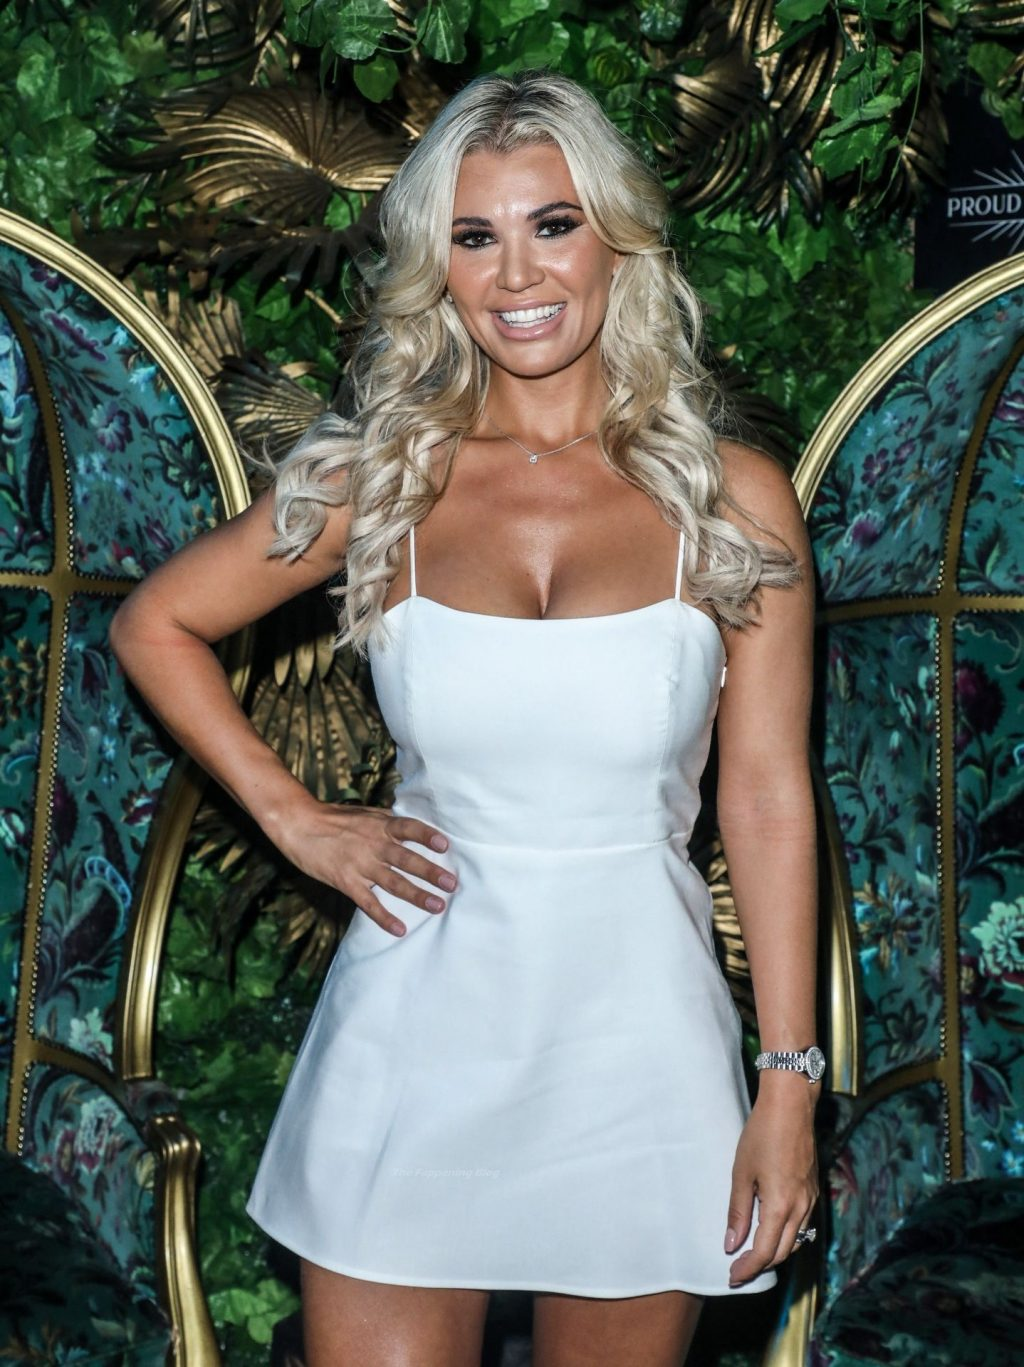 Christine McGuinness Shows Off Her Stunning Legs at Proud Cabaret (95 Photos + Video)